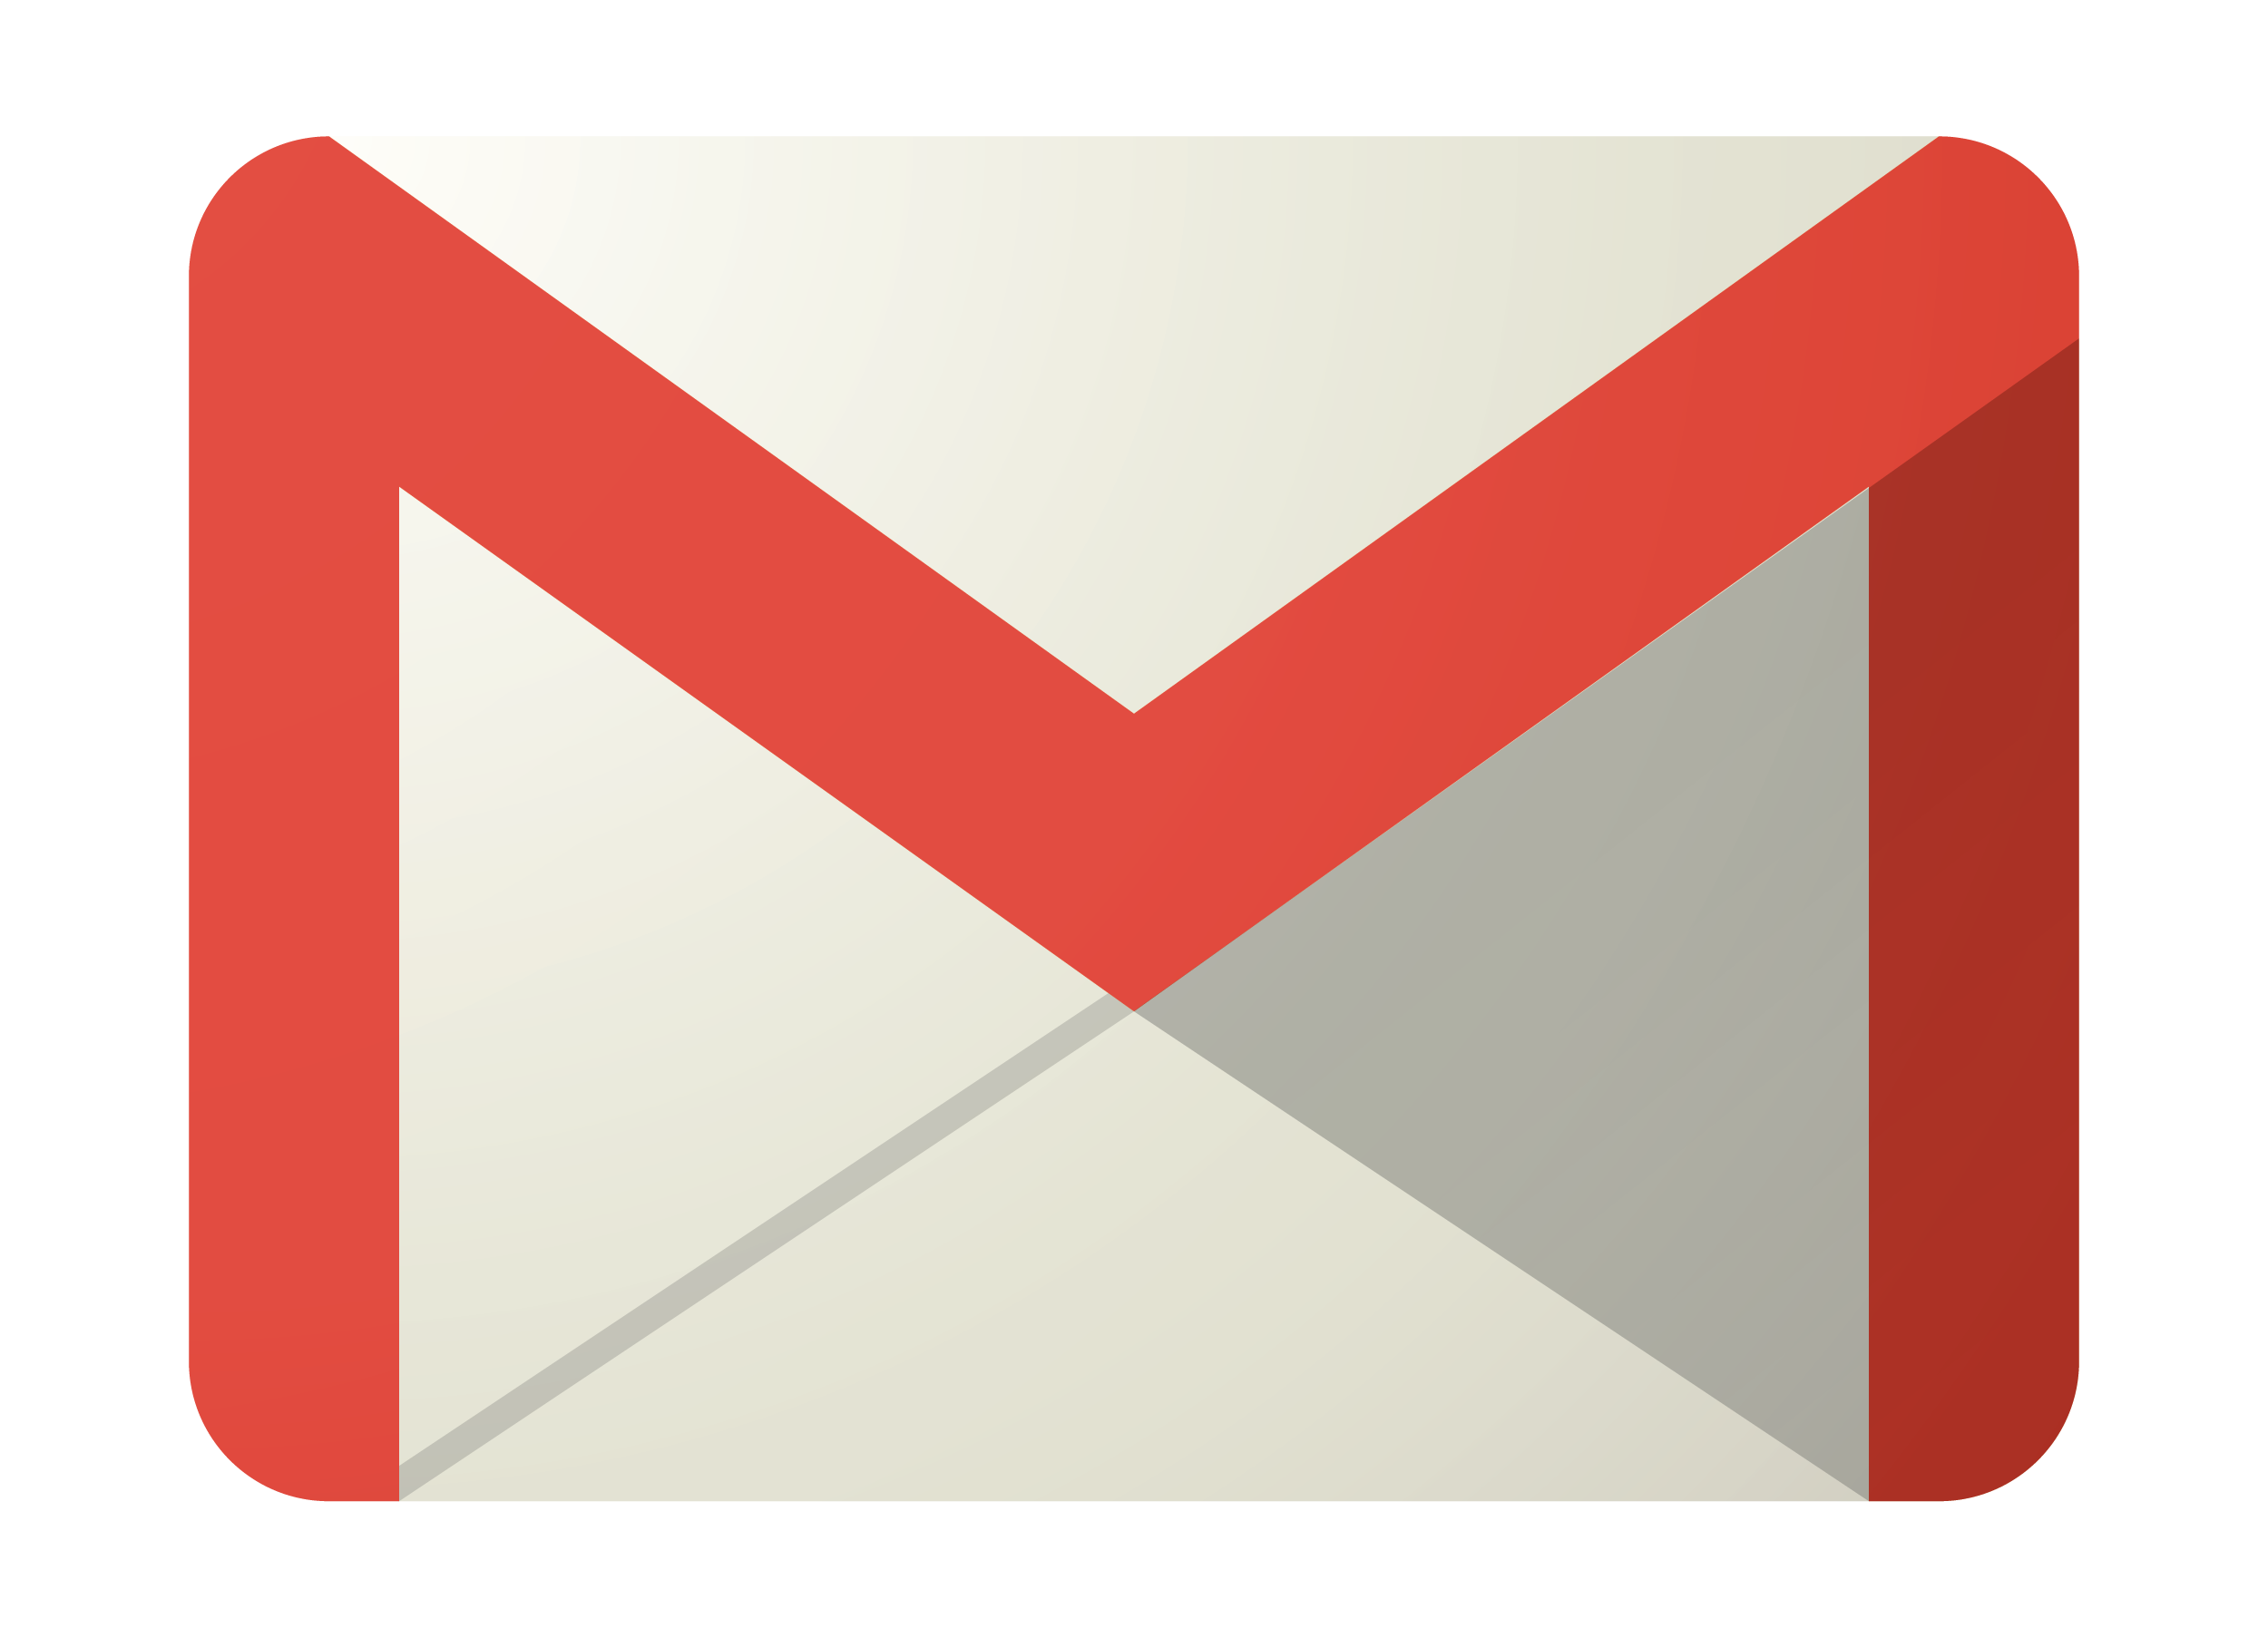 logo gmail png contact machine learning phd student reasoning and #9990